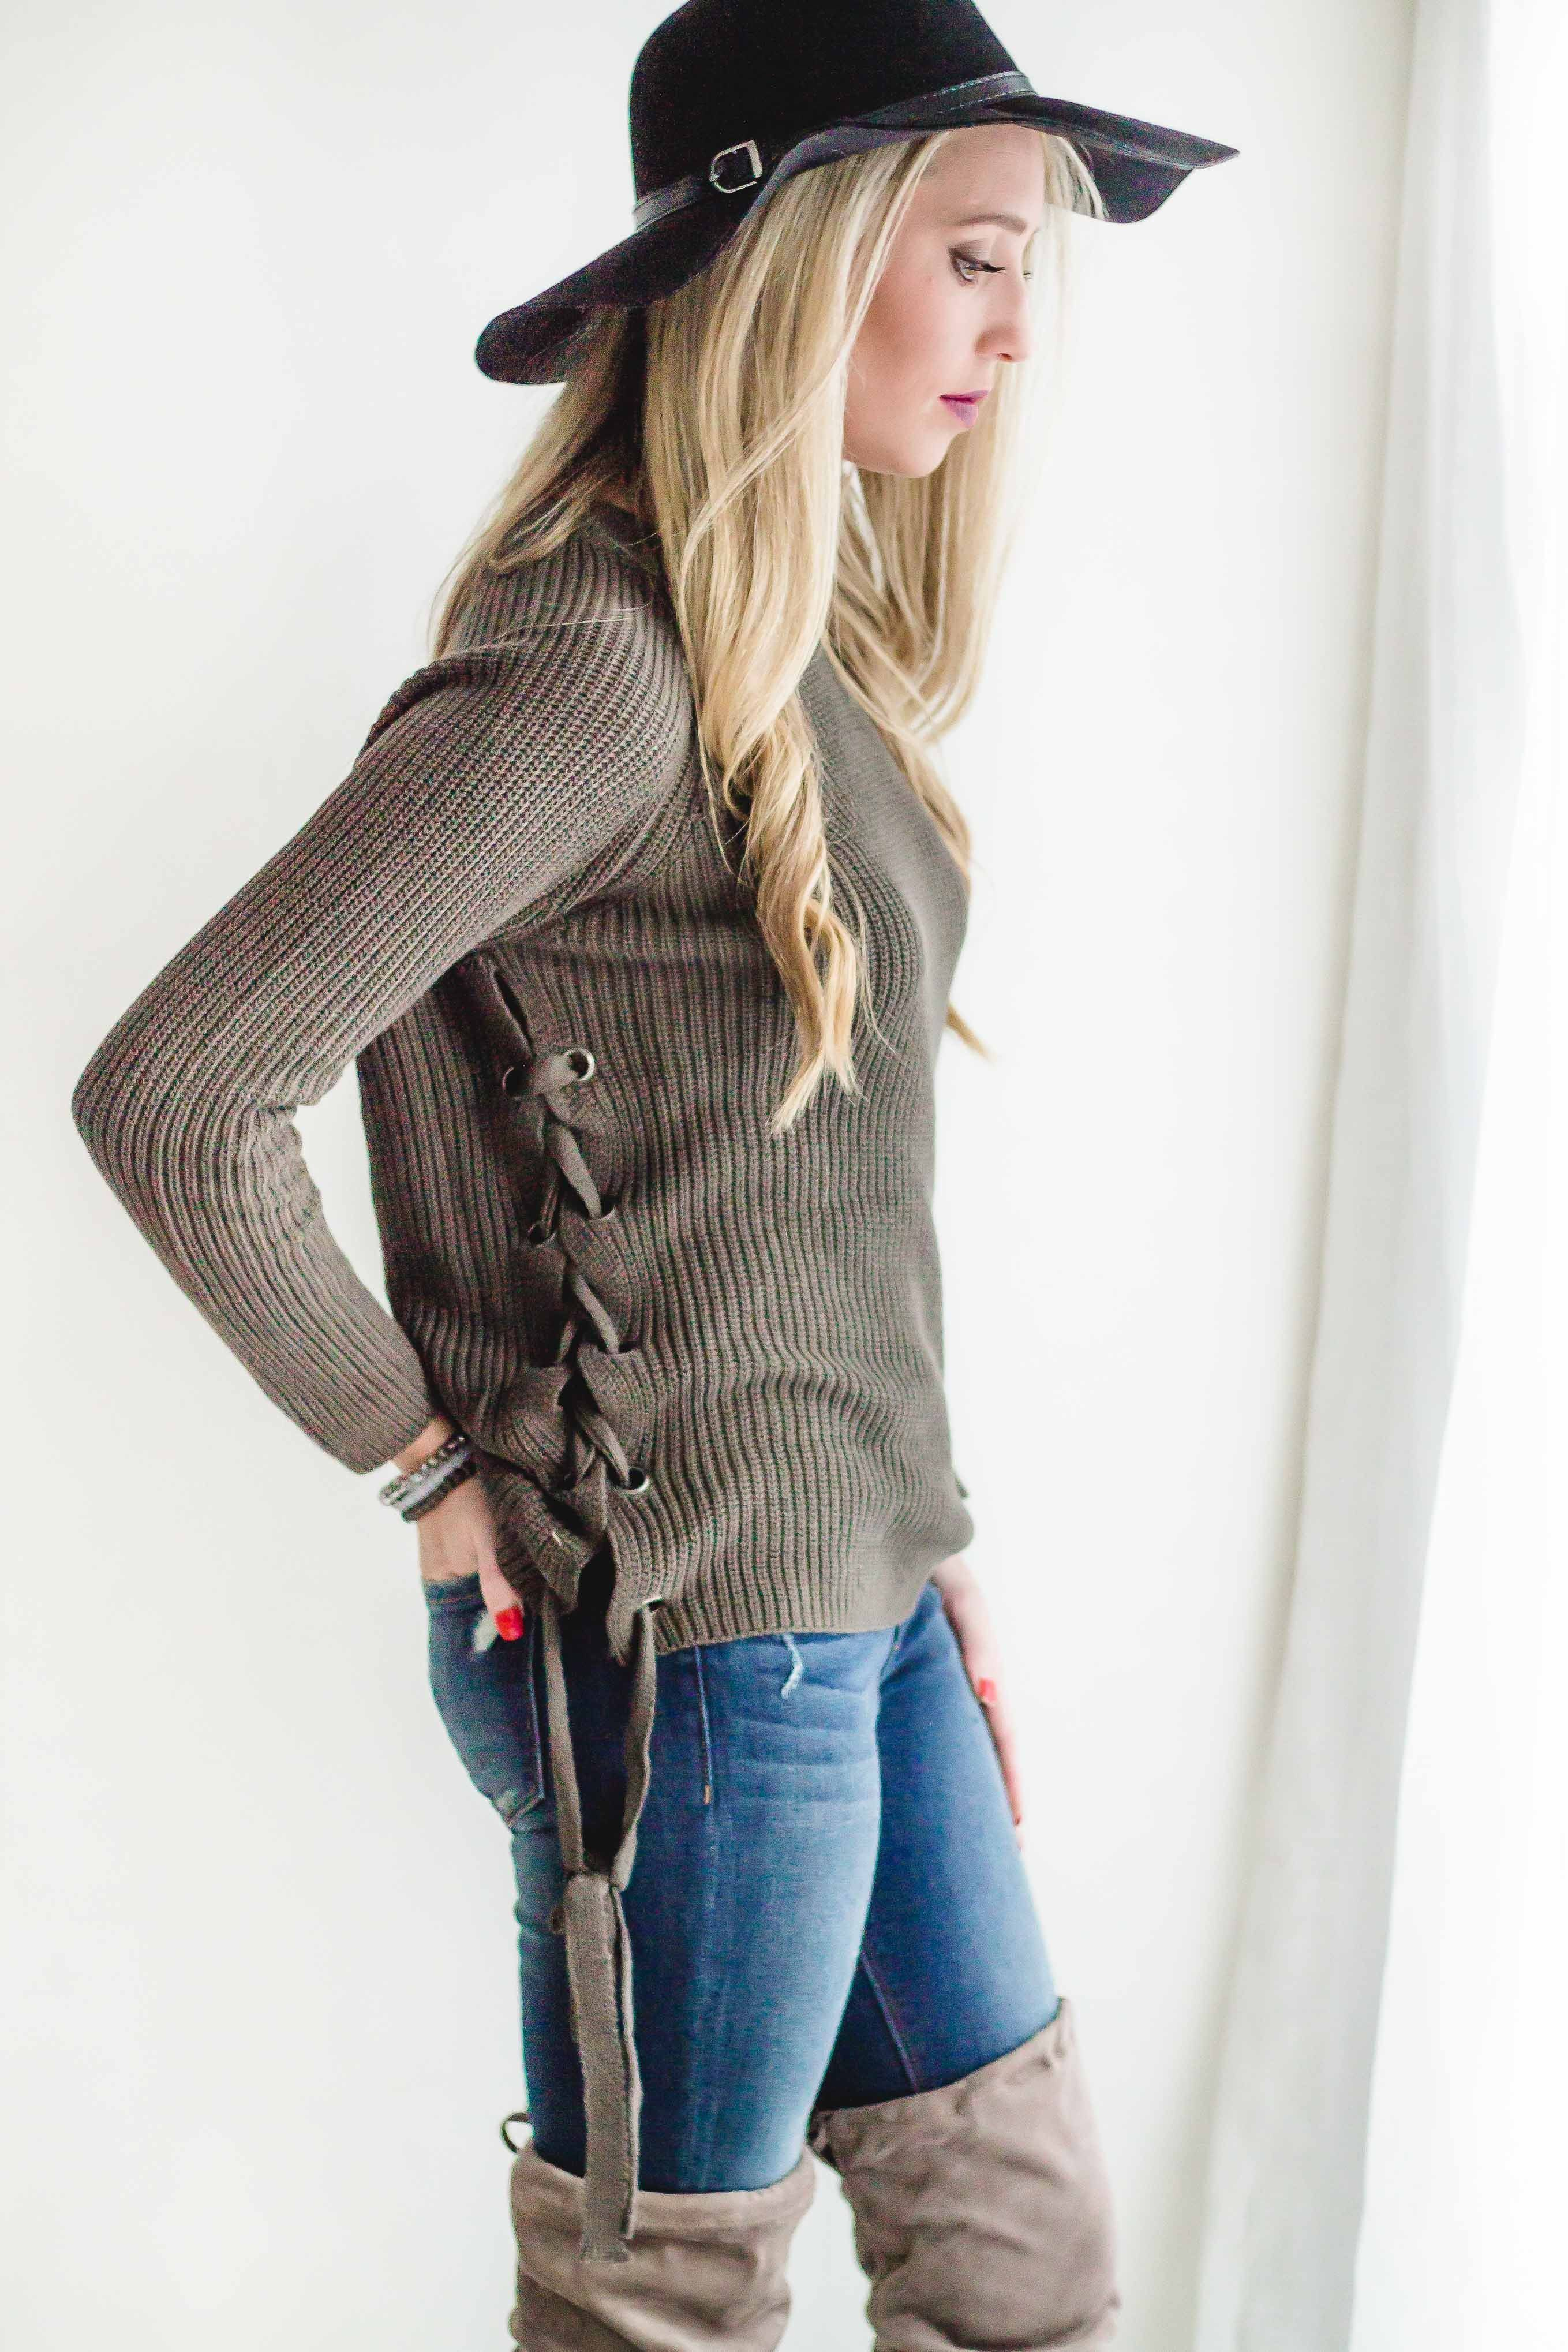 Tied Up Cable Knit Sweater | Cable knit sweaters, Cable knitting ...